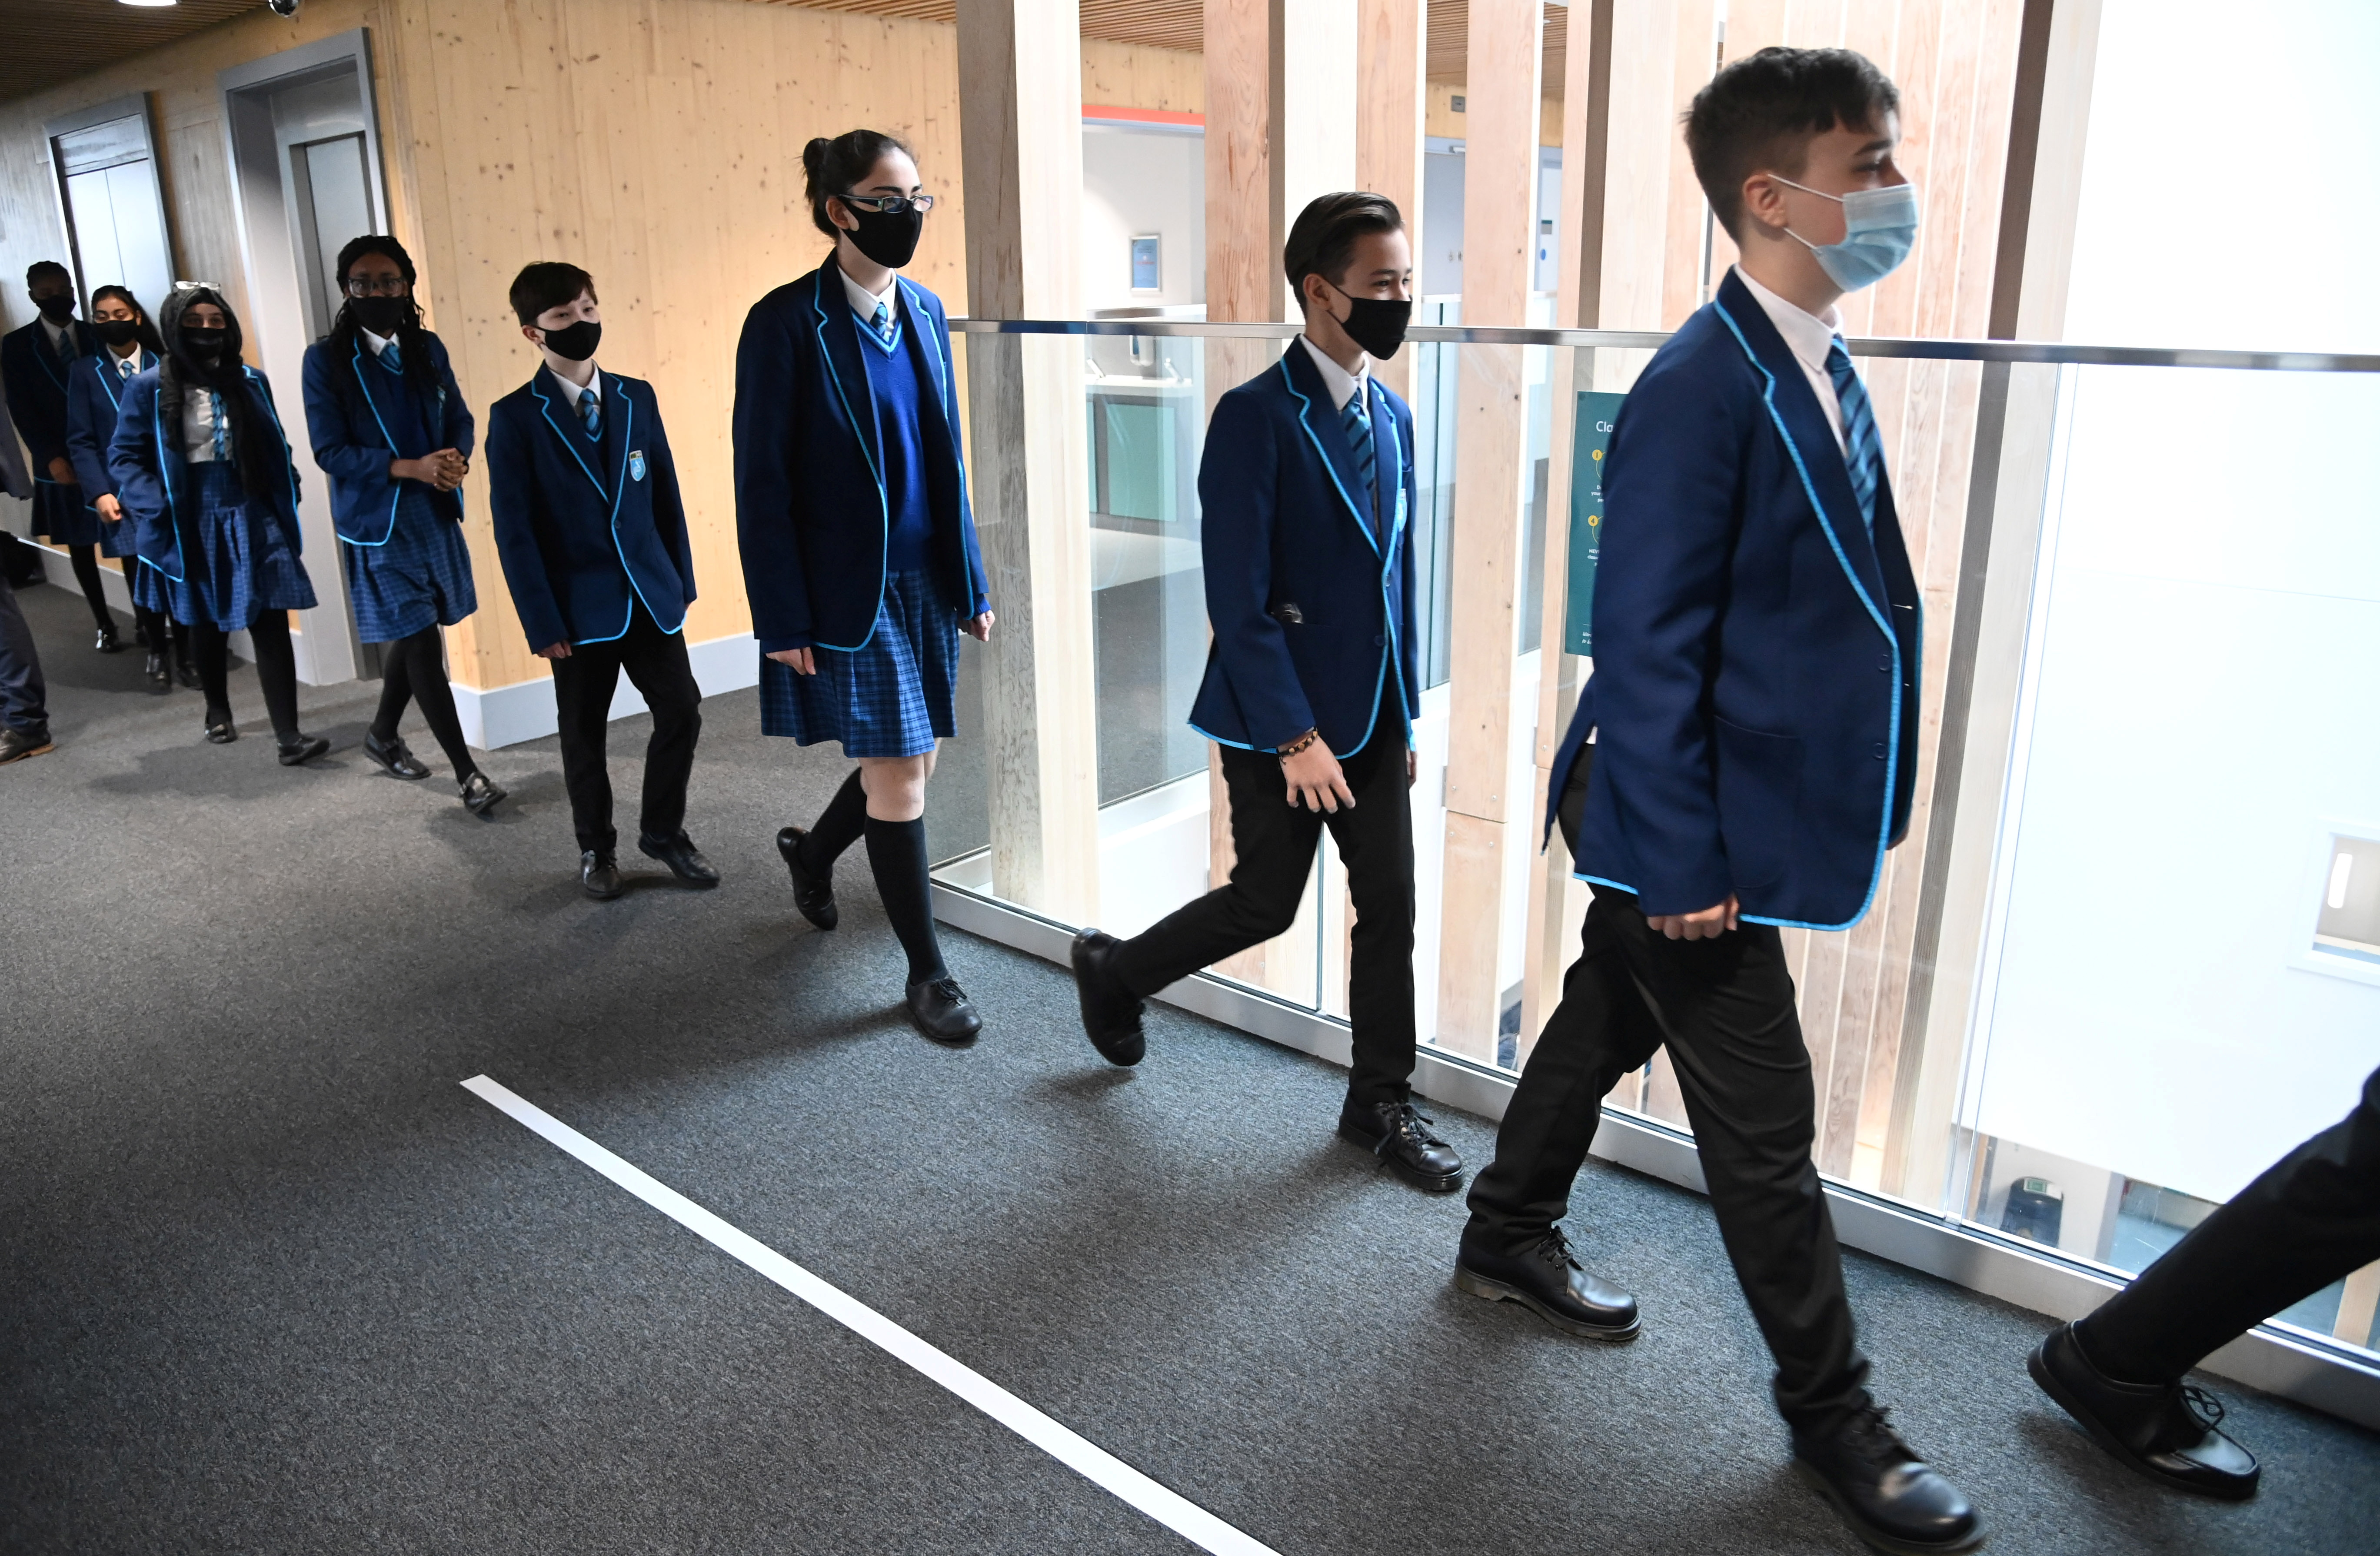 Year 9 students wear protective face masks as they walk between classrooms on the first day back at school, as the coronavirus disease (COVID-19) lockdown begins to ease at Harris Academy Sutton, south London, Britain, March 8, 2021. REUTERS/Toby Melville